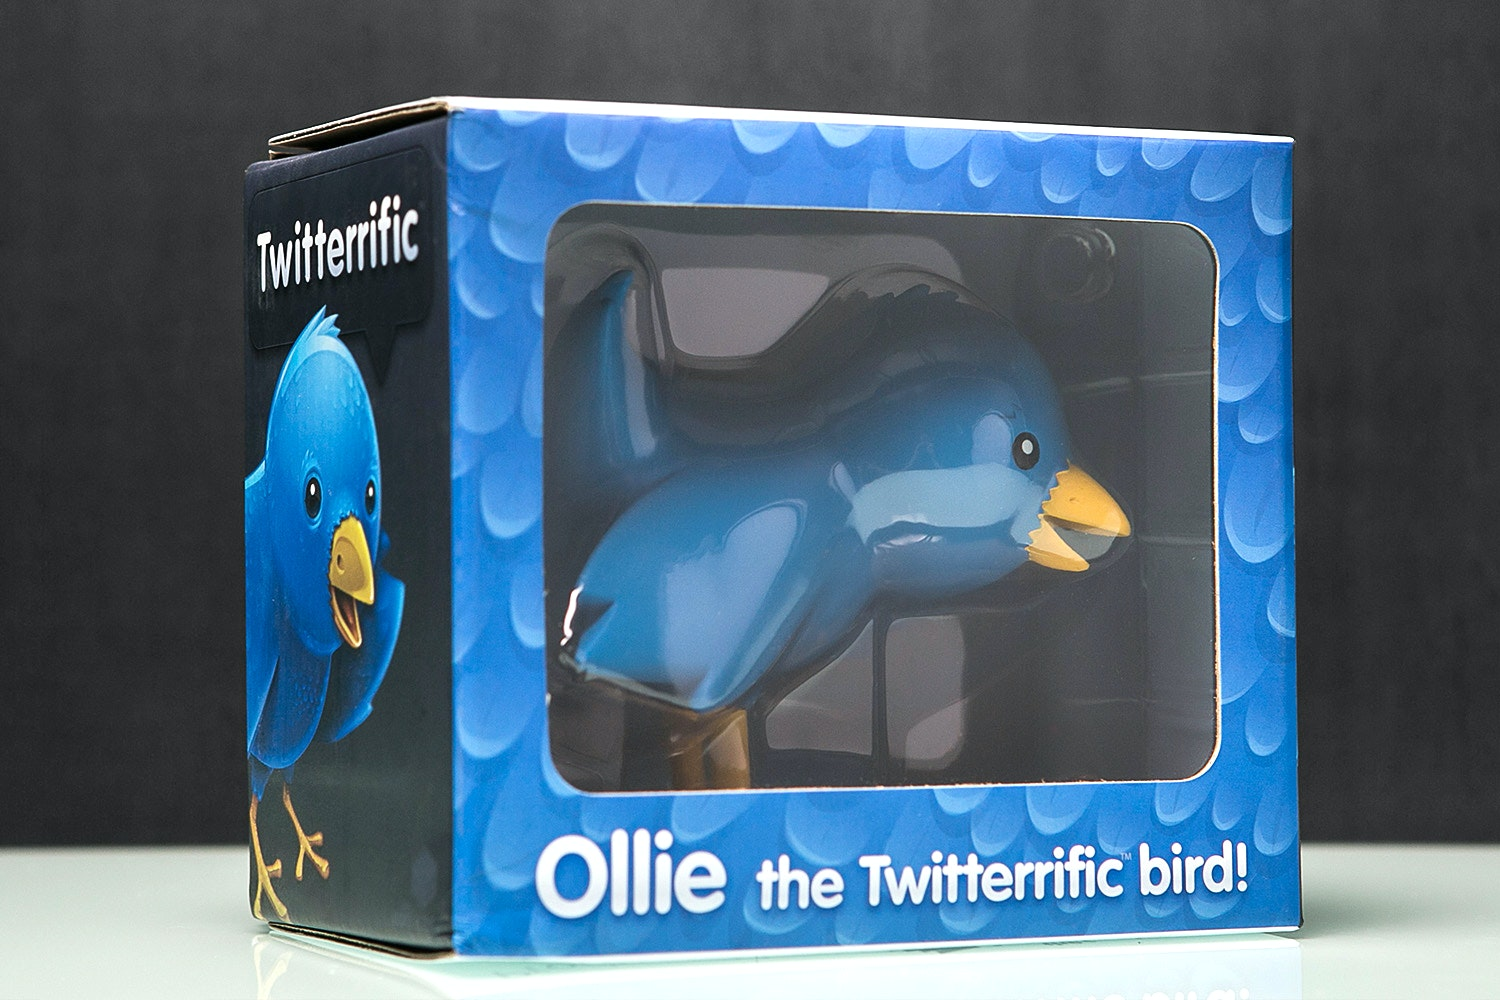 Ollie the Twitteriffic Bird